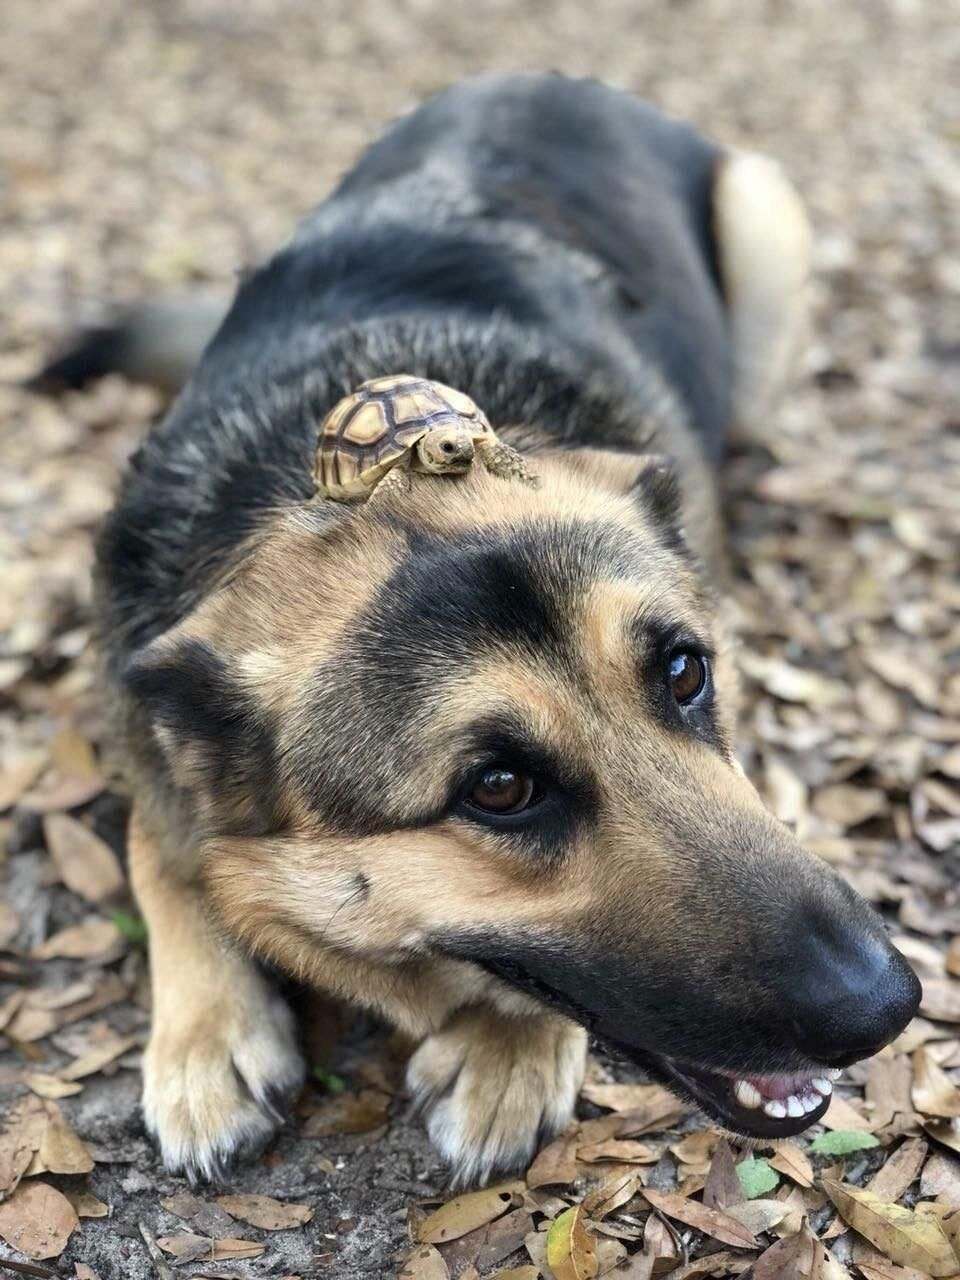 Doggo is happy about his new friend… :D